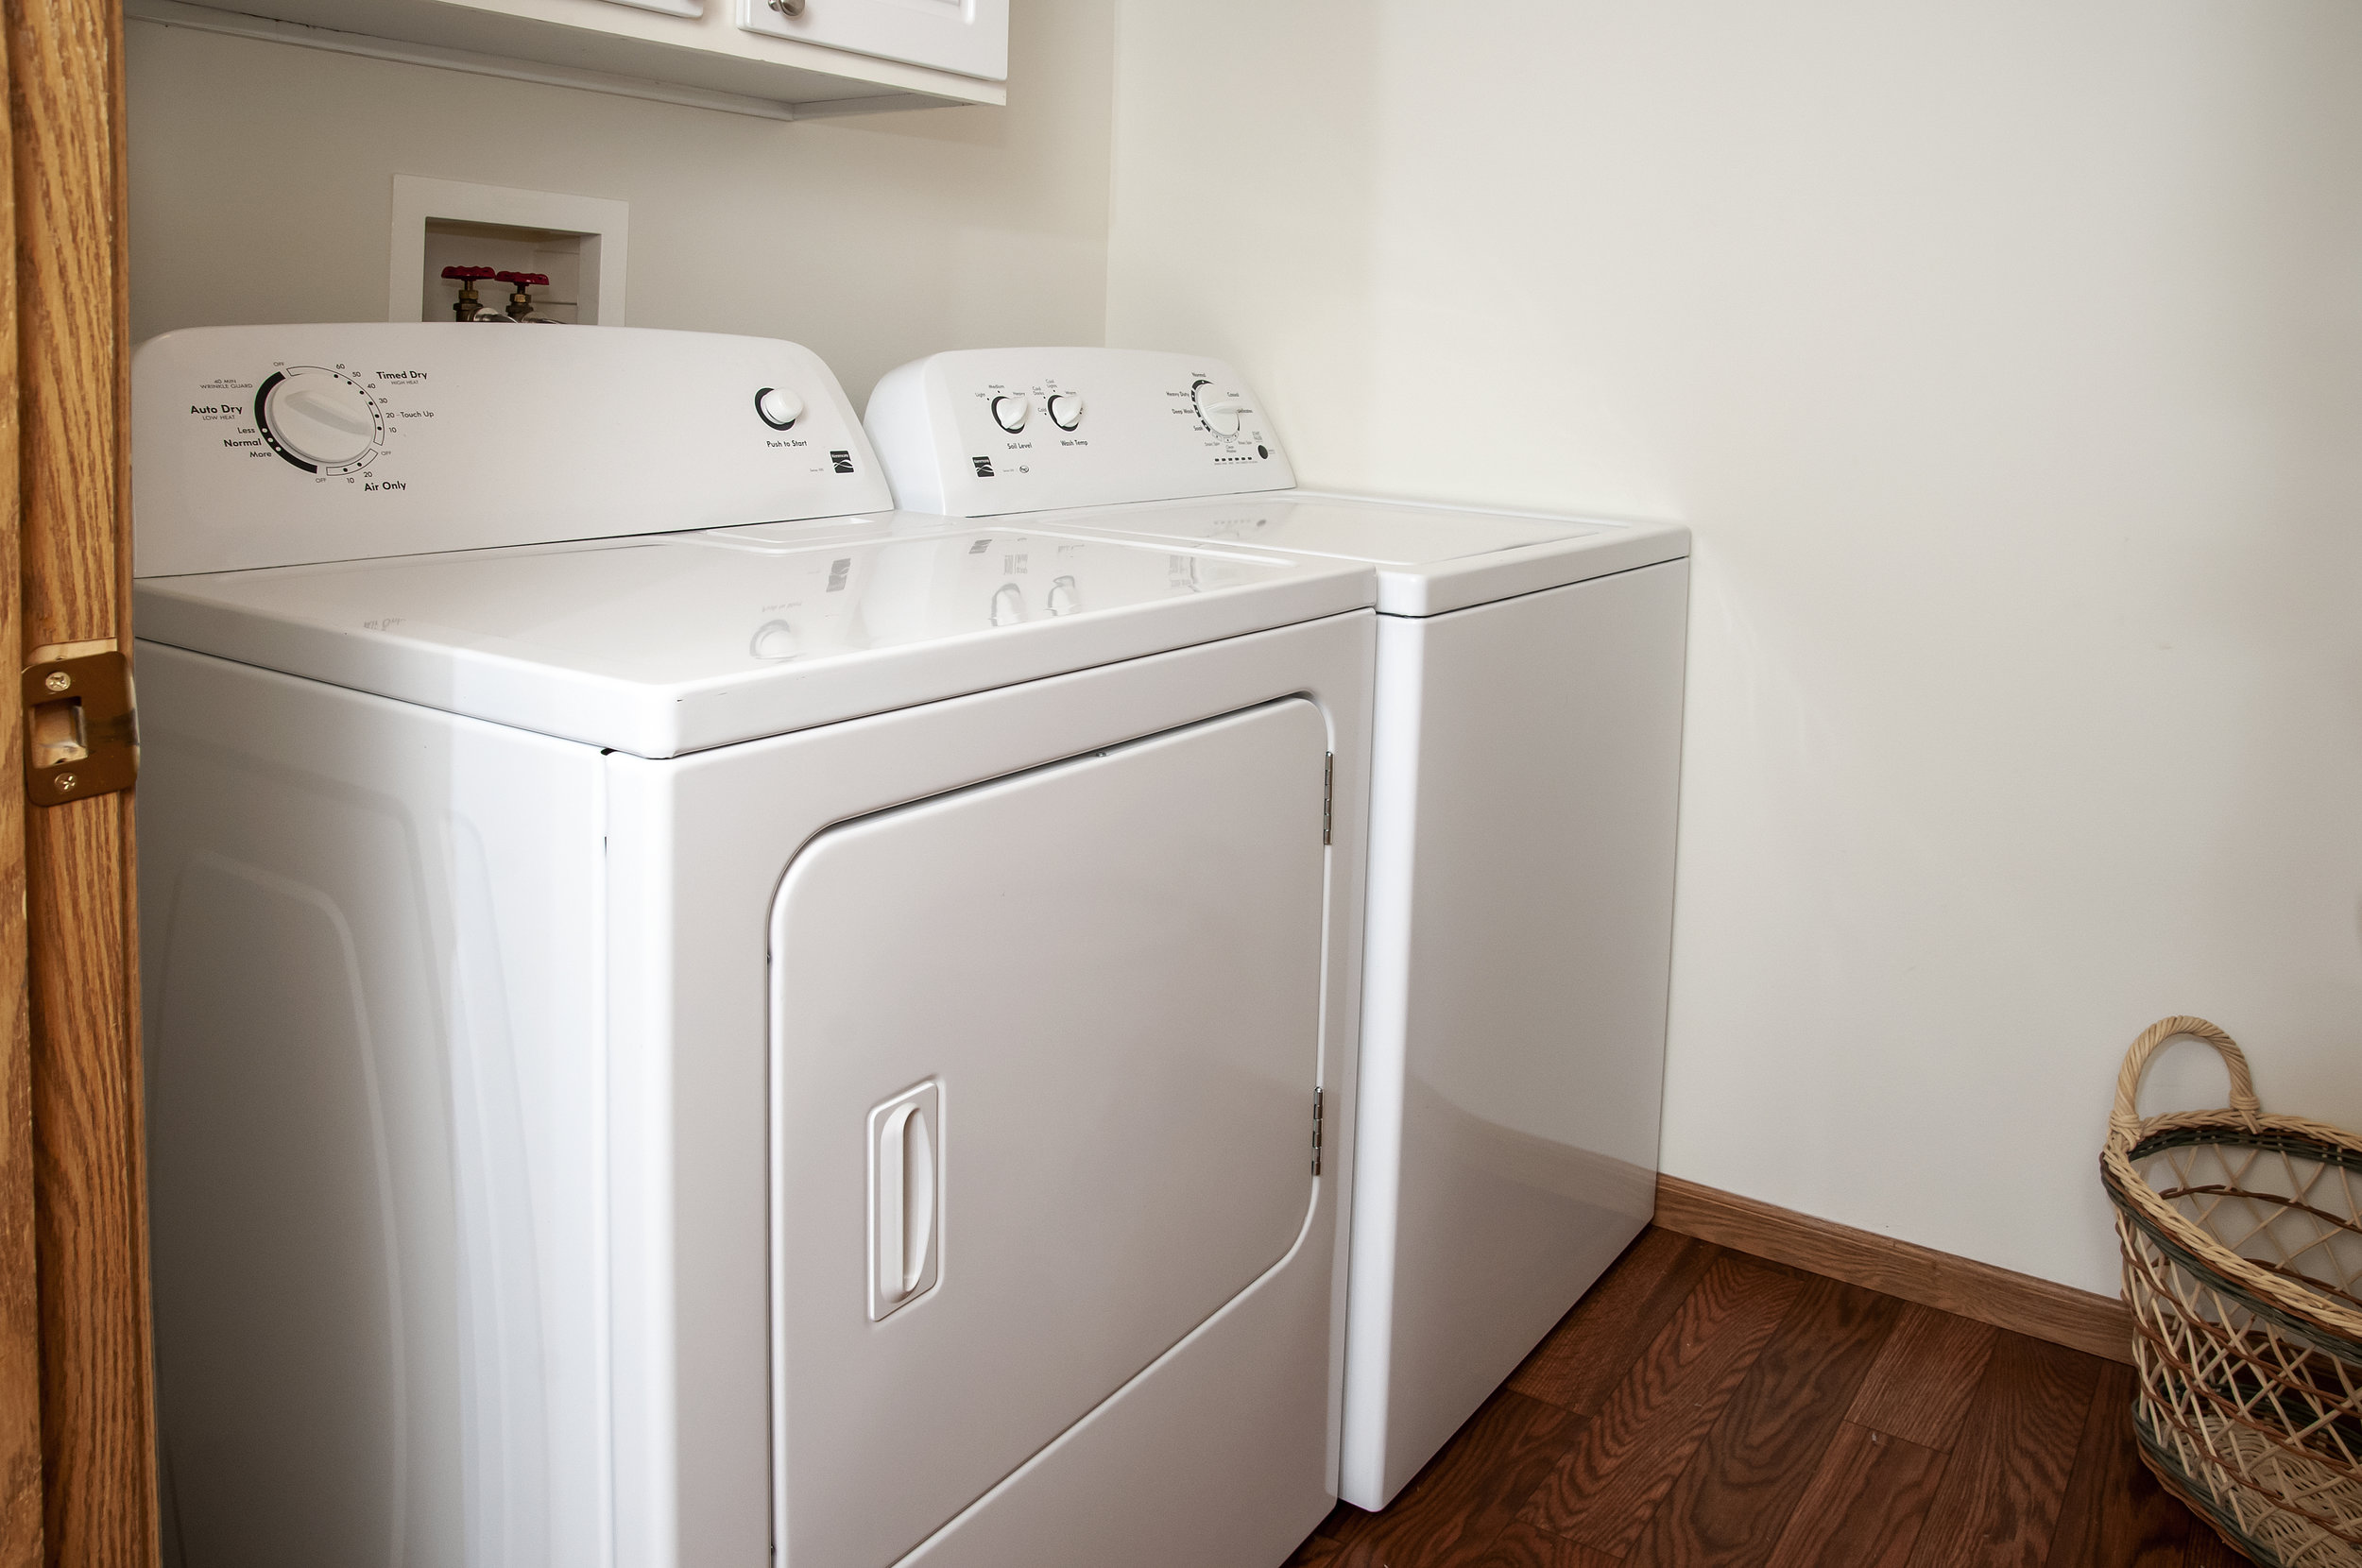 07 In-Unit Washer _ Dryer.jpg